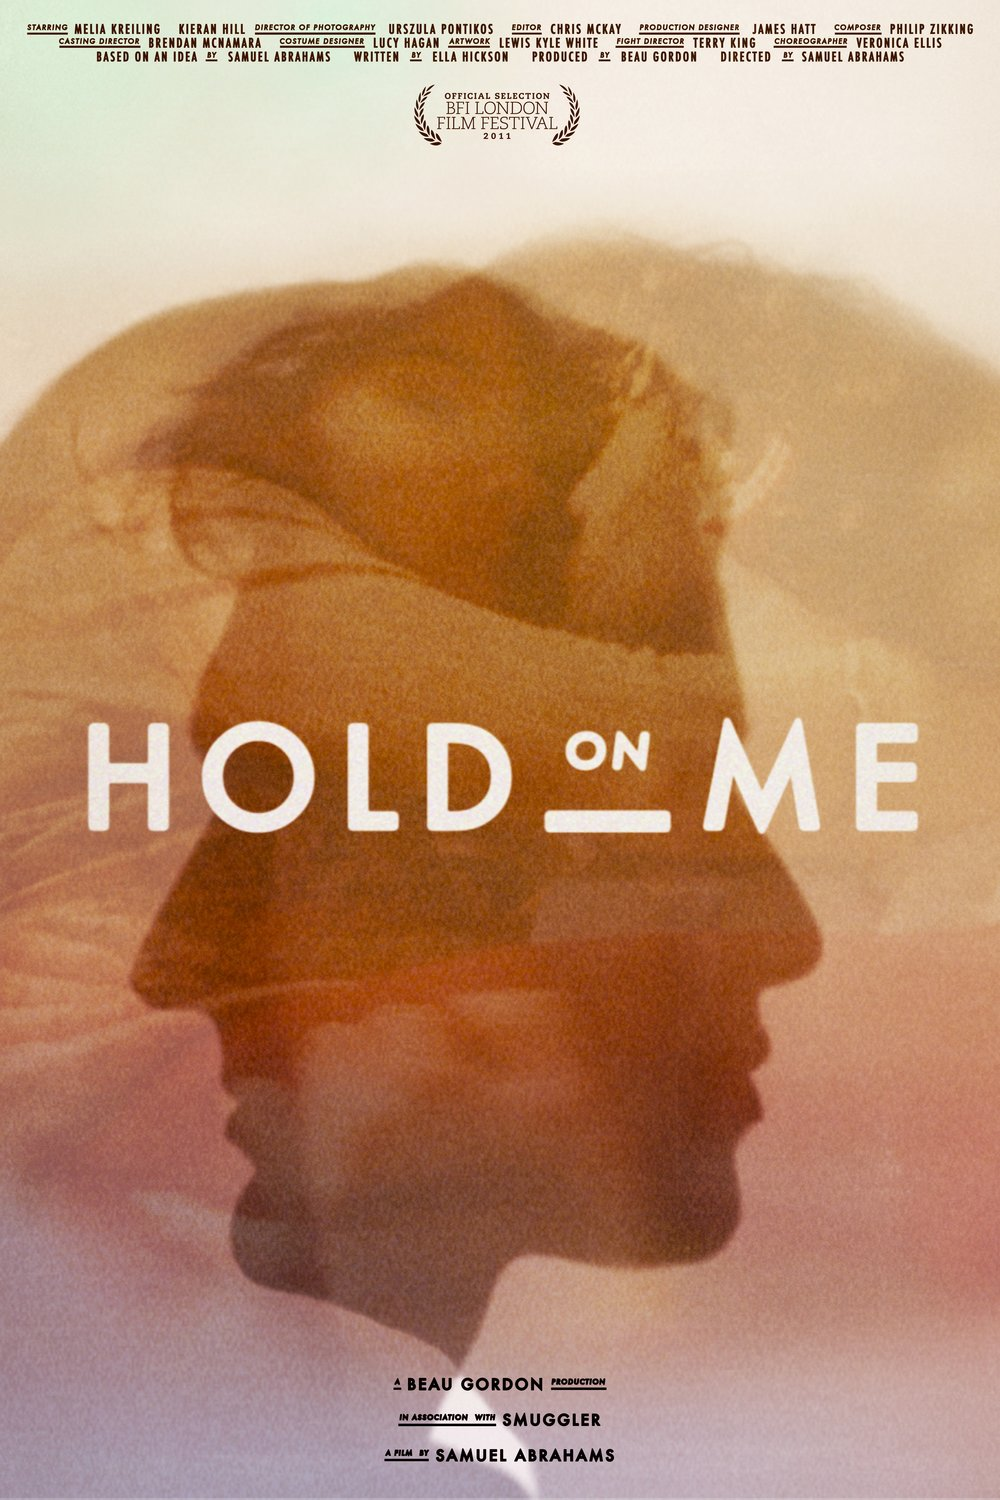 Buy 'HOLD ON ME' on iTunes  - Samuel's award winning short film starring Melia Kreiling.